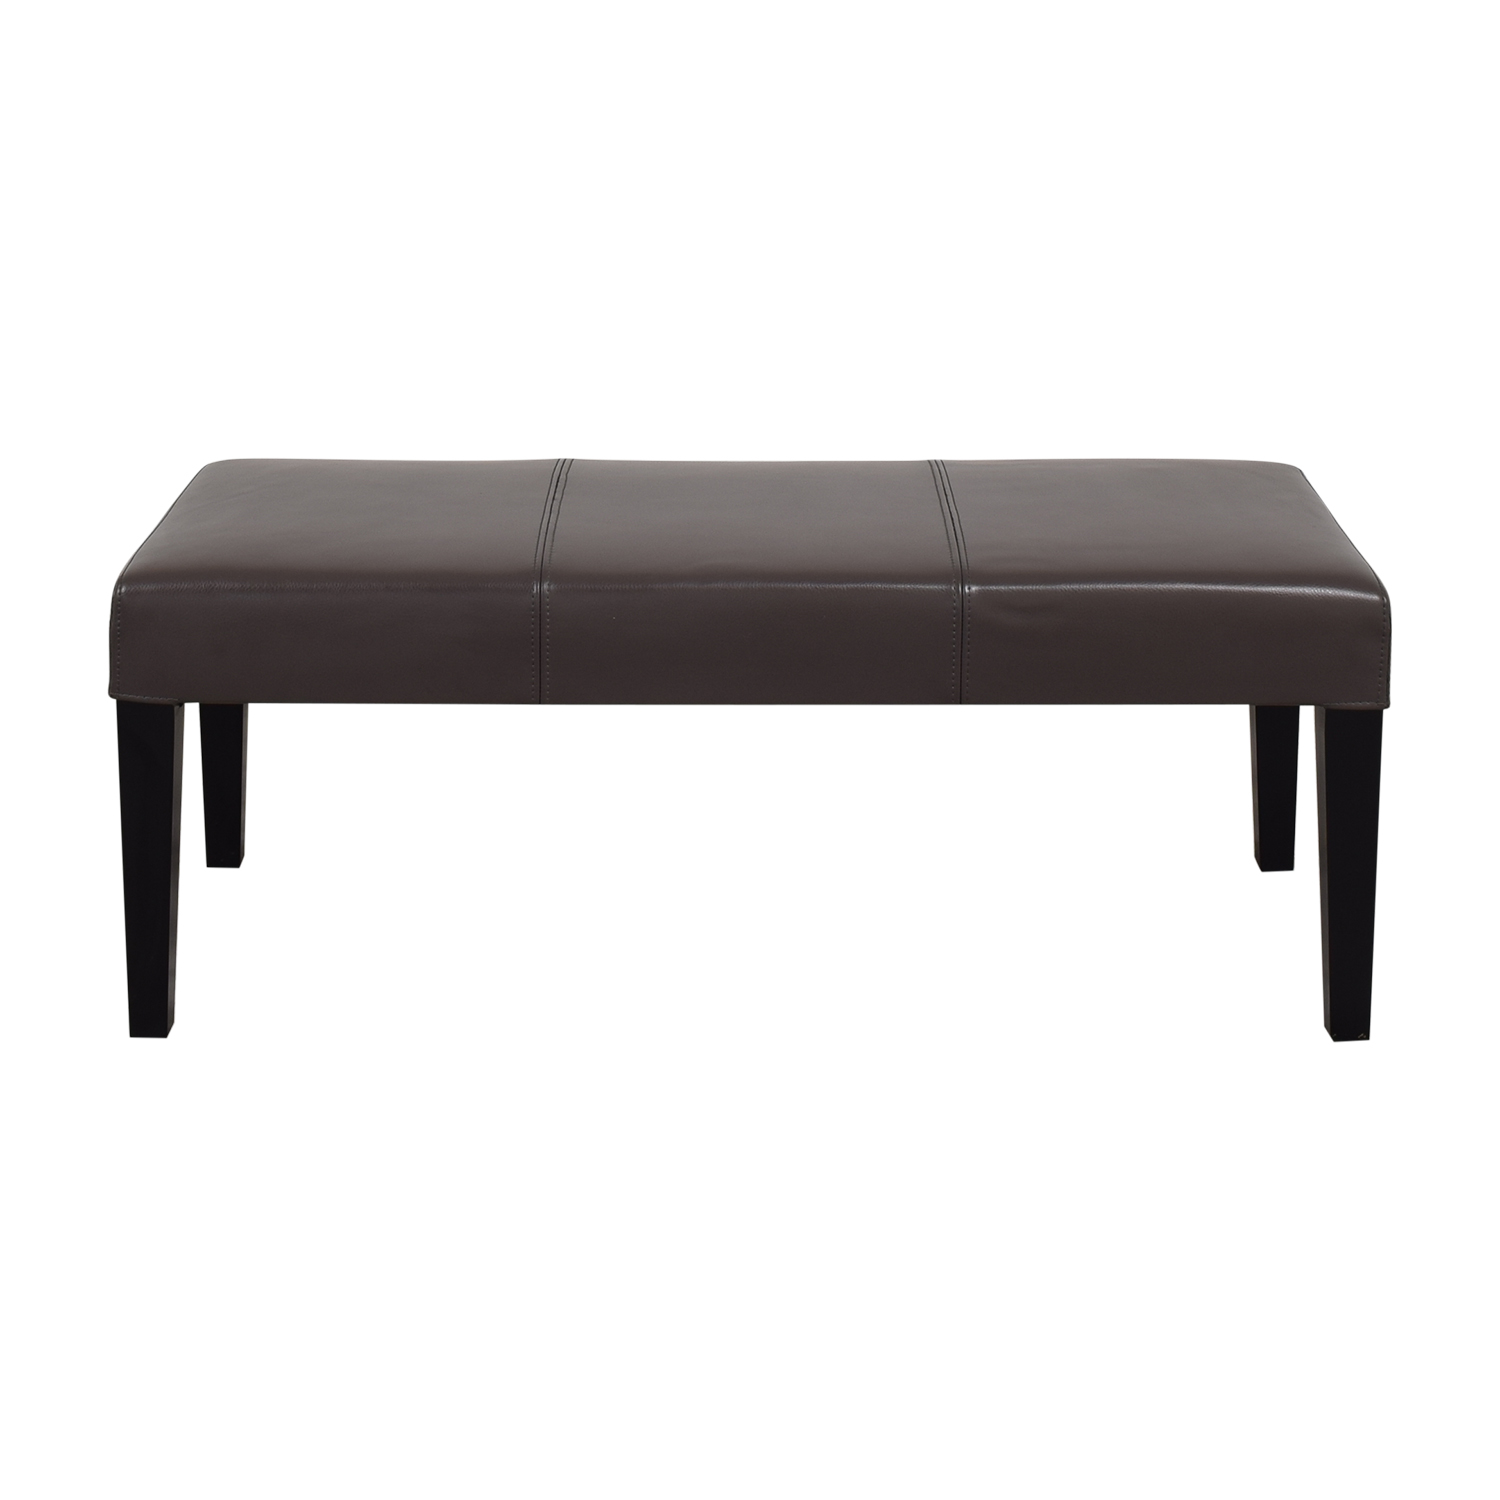 Crate & Barrel Crate & Barrel Lowe Backless Bench